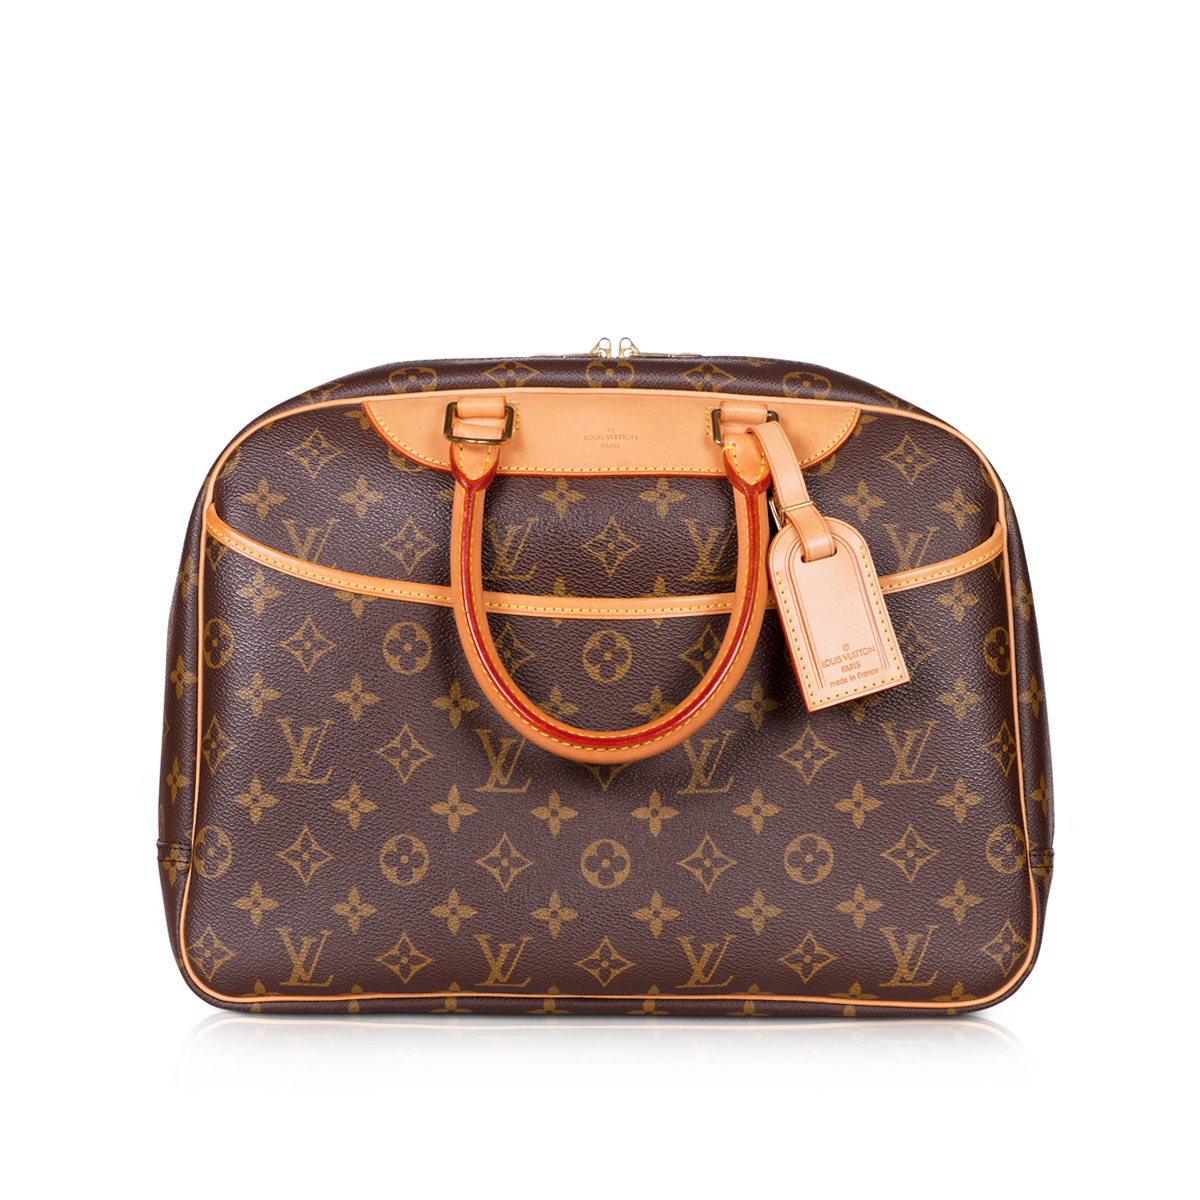 c43be0ce0e75 Louis Vuitton Deauville - Seasons Vintage